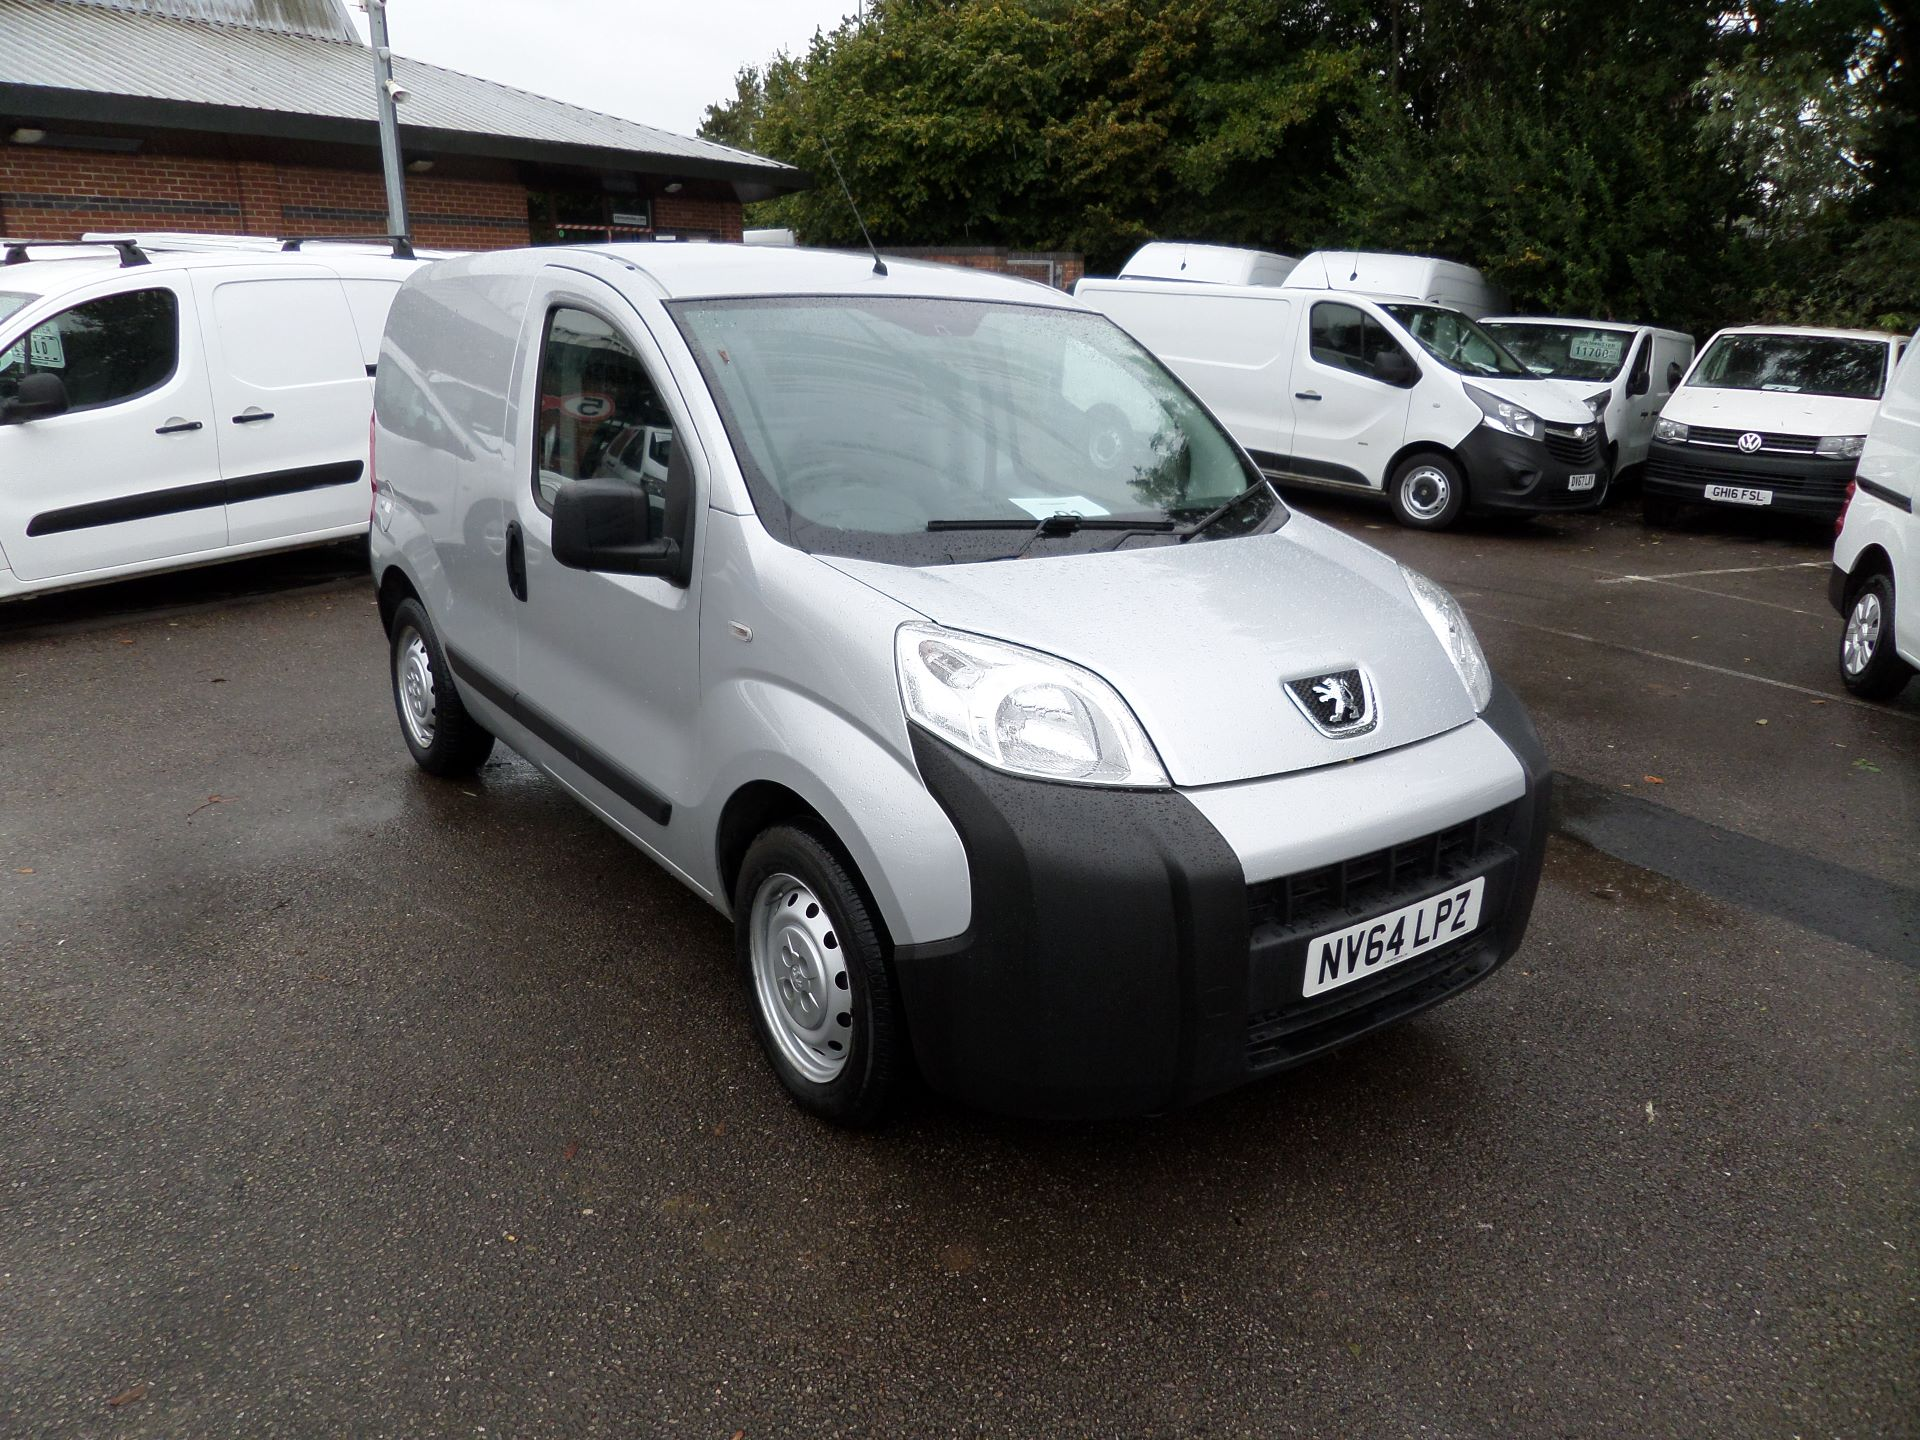 2014 Peugeot Bipper 1.3 Hdi 75 S Plus Pack [Sld] Euro 5 (NV64LPZ)